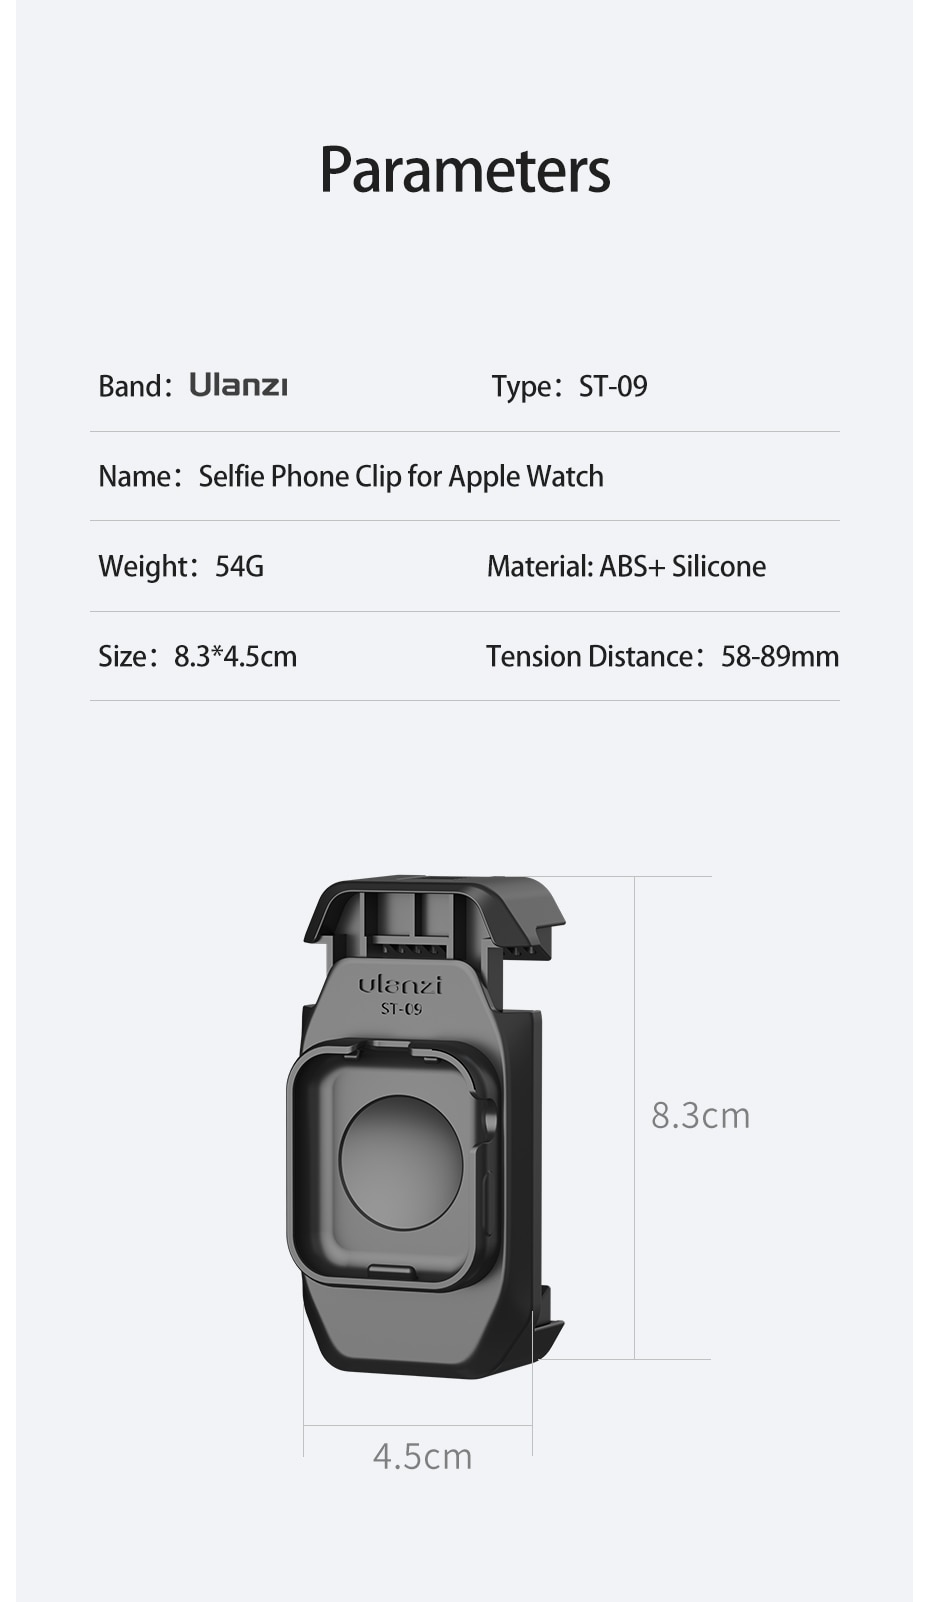 Ulanzi ST-09 Smartphone Mount with Cold shoe for Apple Watch Series 5 Vlog Cold Shoe Tripod Mount for LED Light Microphone